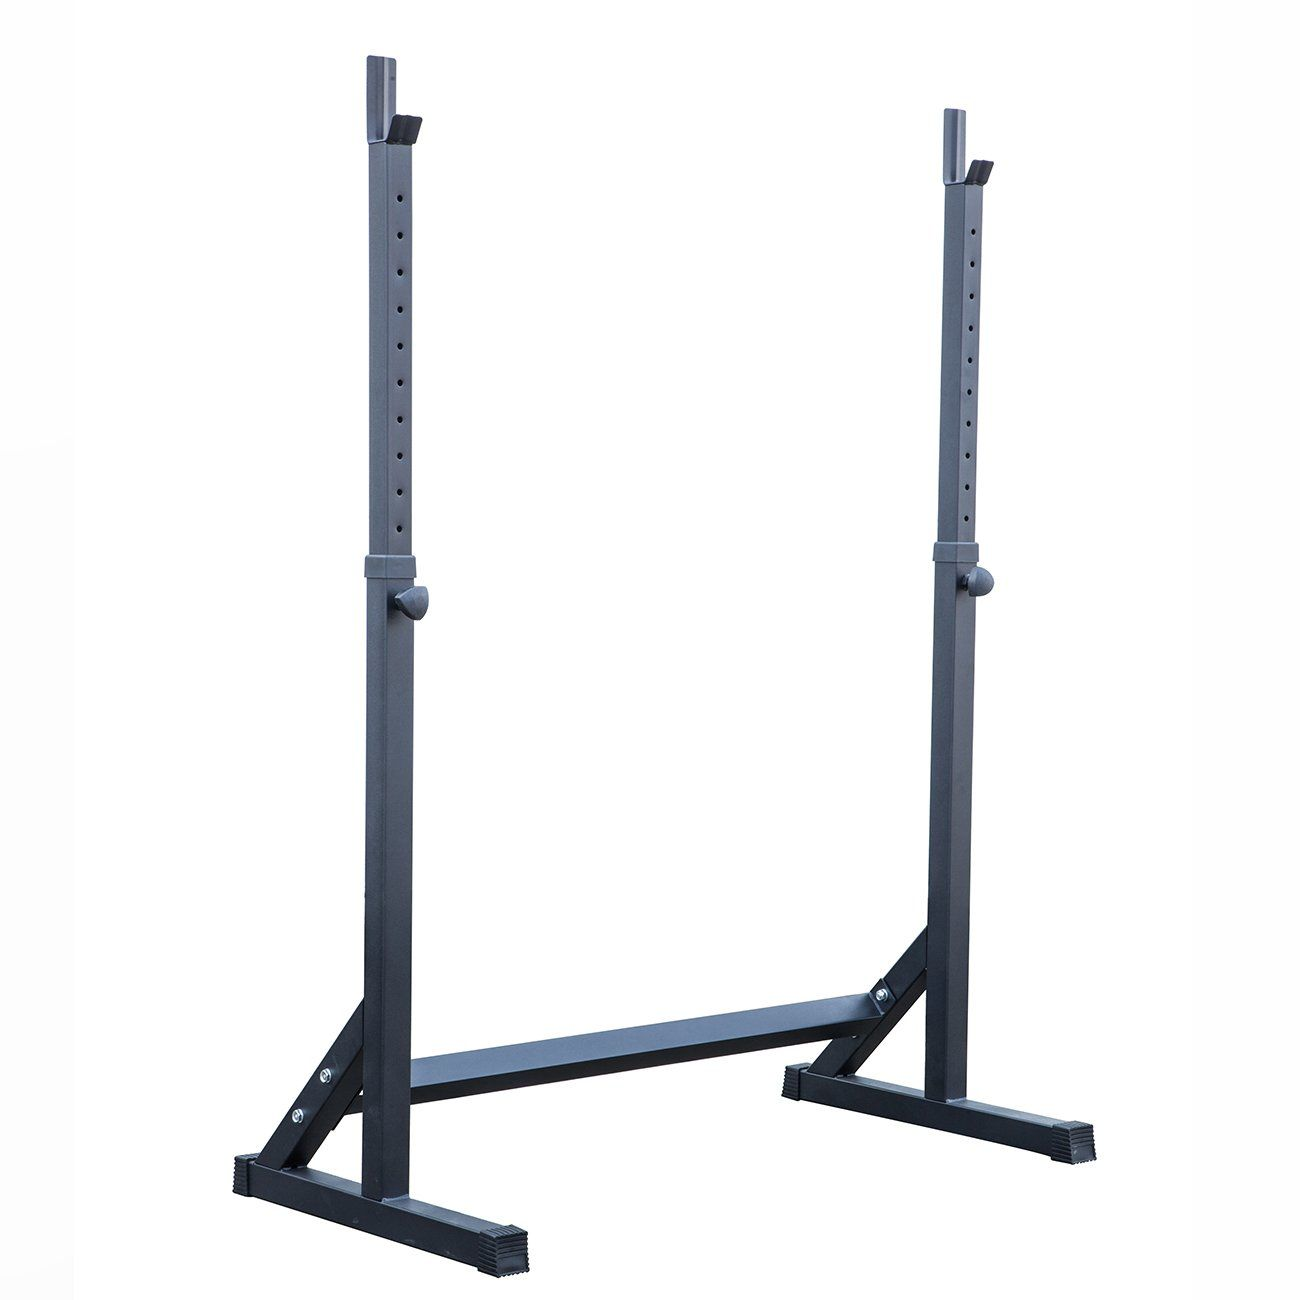 Akonza Adjustable Squat Rack Stand Barball Free Press Bench Equipment Training Cross Fit (With images) | Squat rack